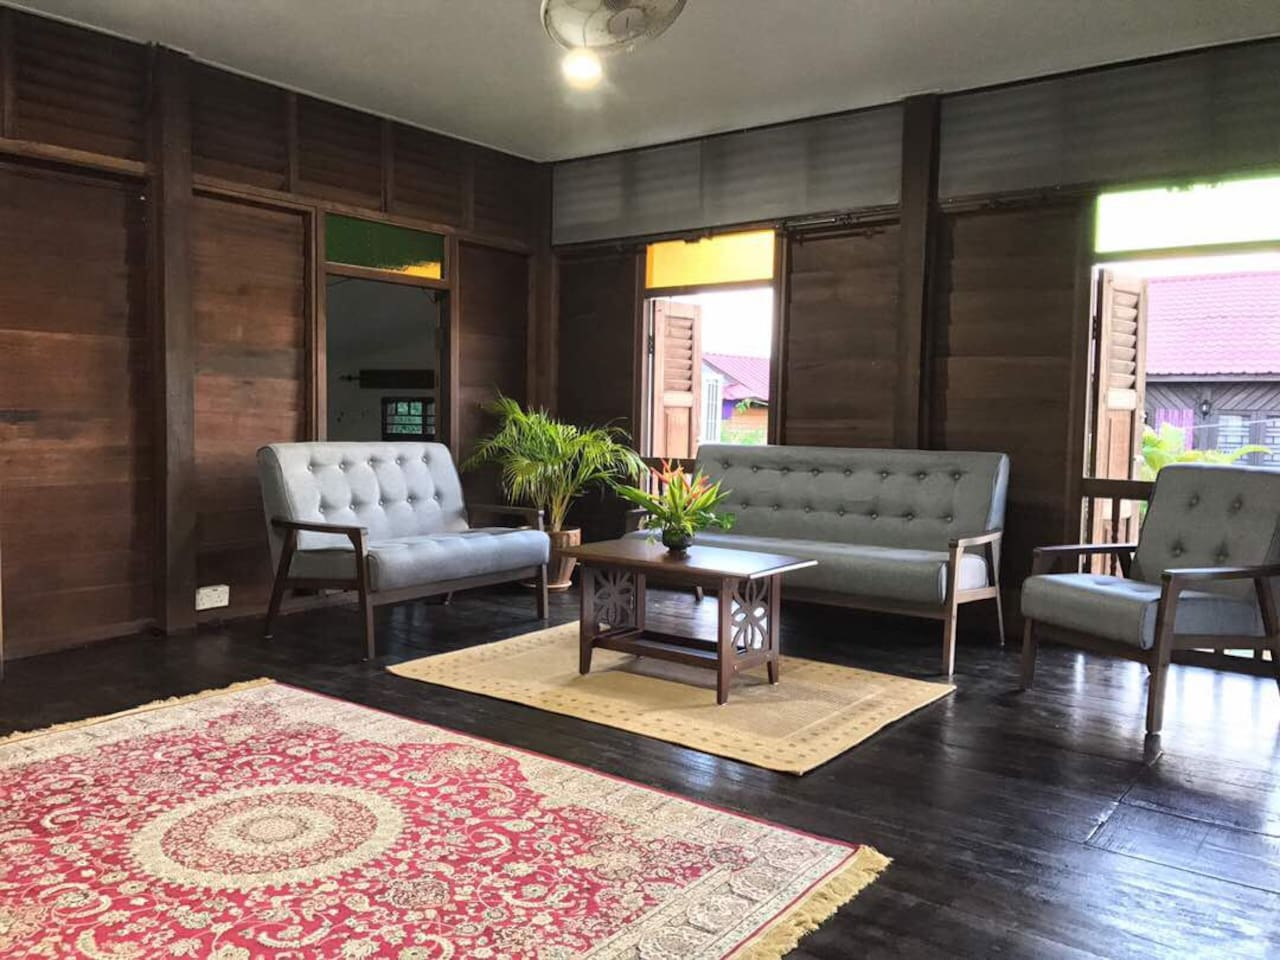 Bright and spacious common area decorated in traditional Malaysian style